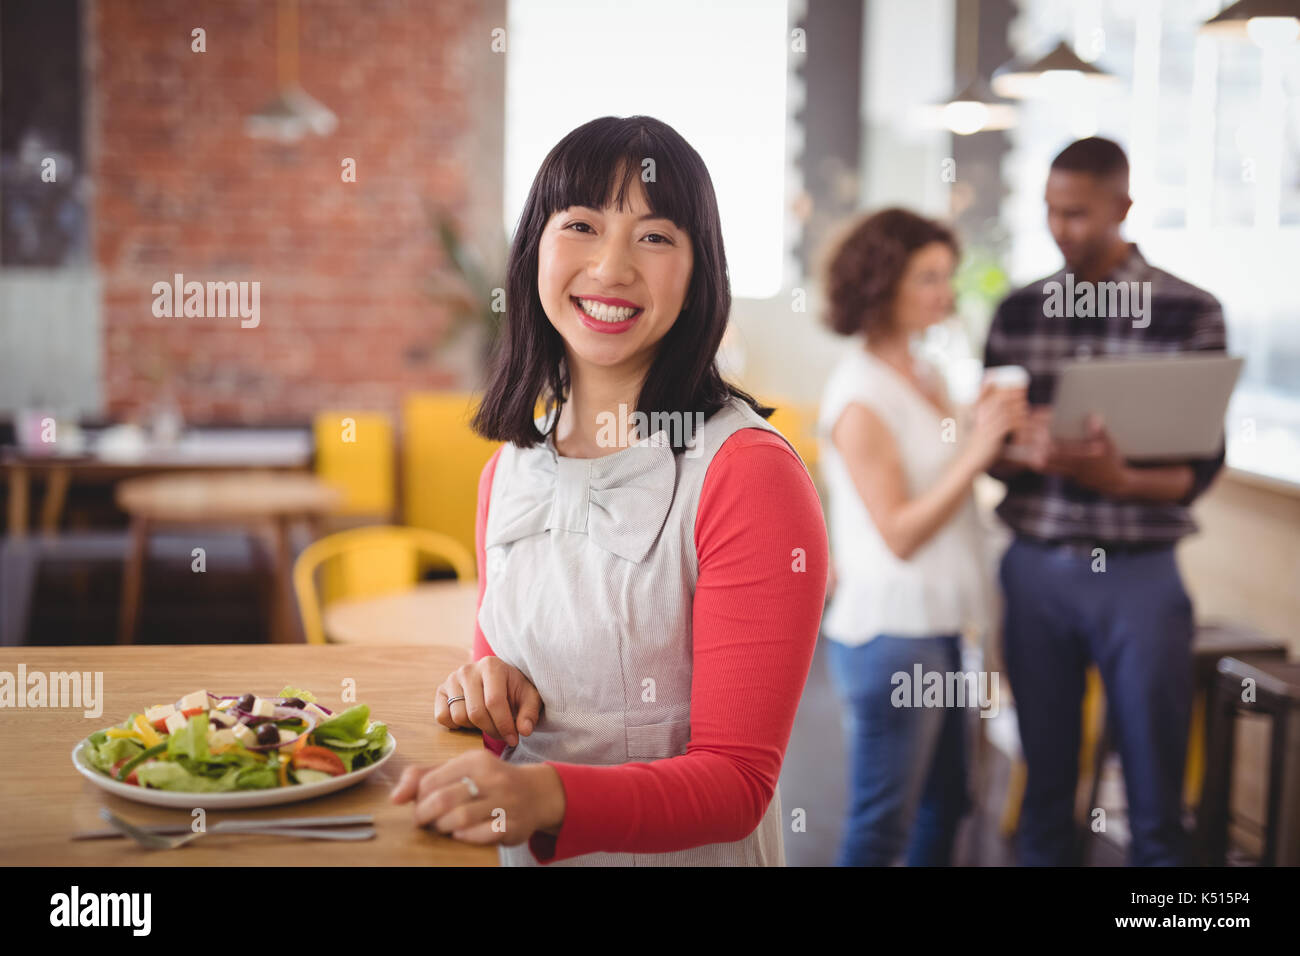 Portrait of smiling young woman sitting with fresh salad at table in coffee shop - Stock Image